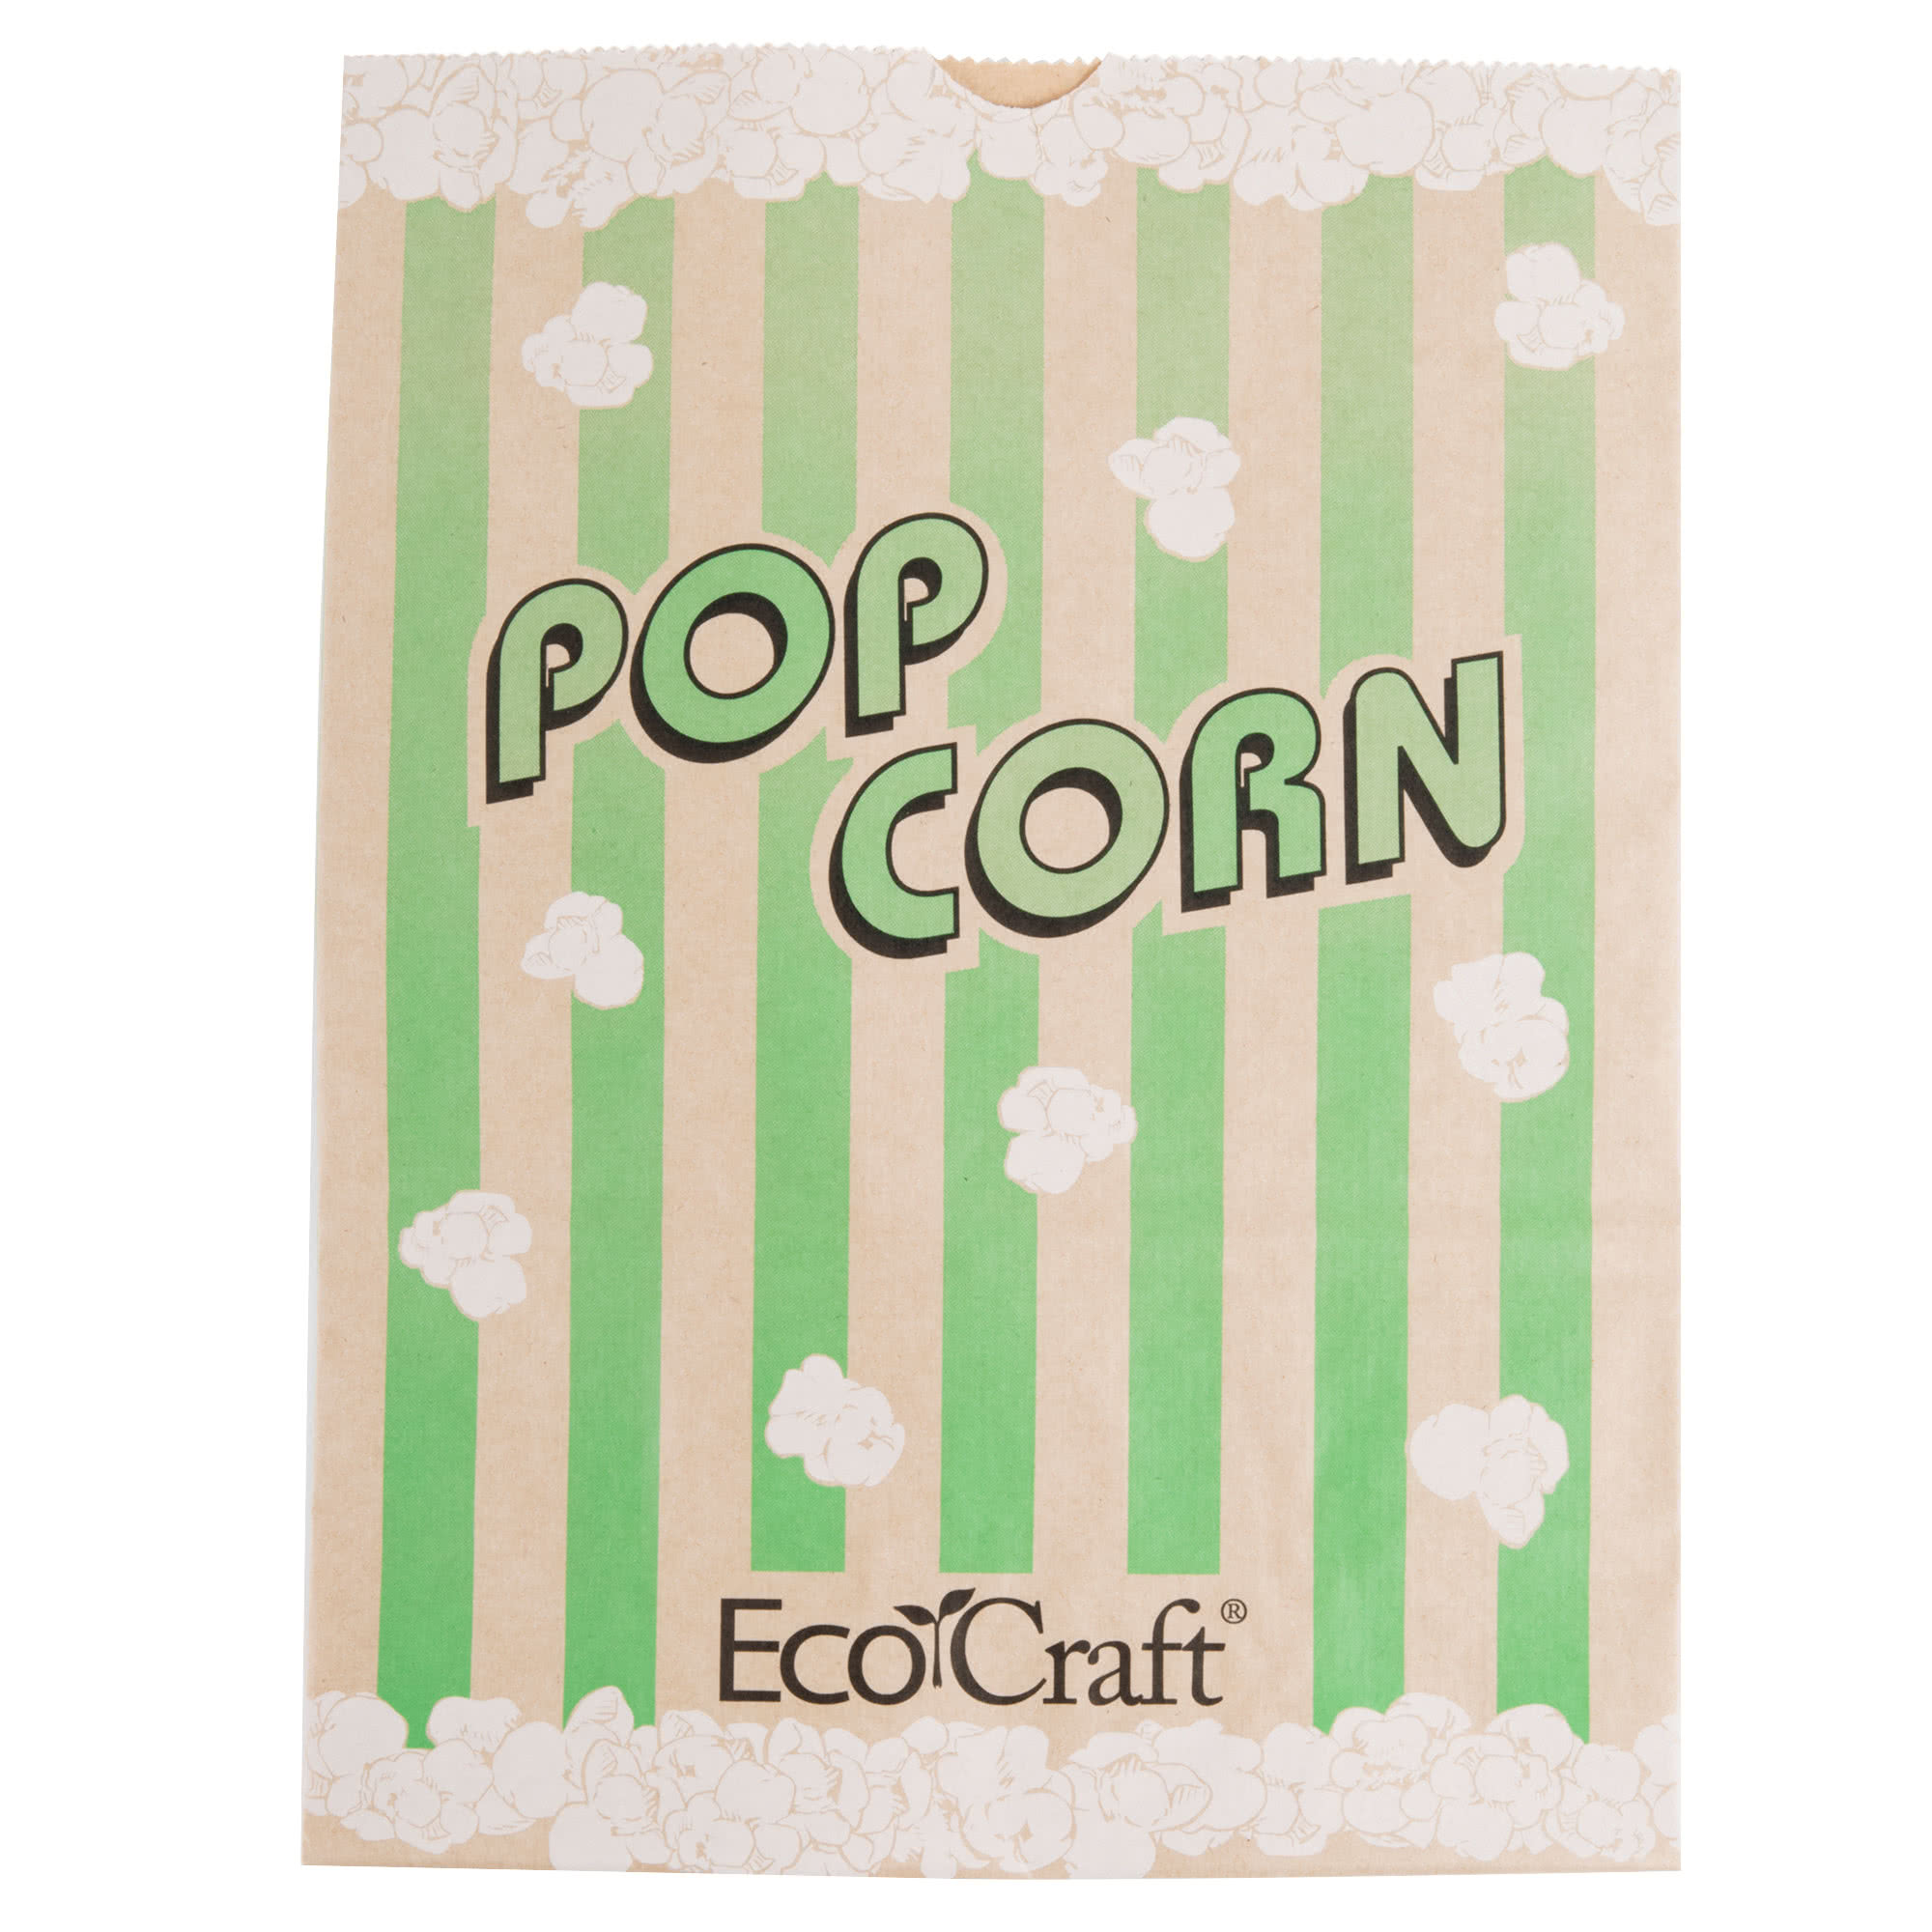 """300613 7 1 2"""" x 3 1 2"""" x 9"""" 130 oz. EcoCraft Popcorn Bag 500 Case By... by TableTop King"""